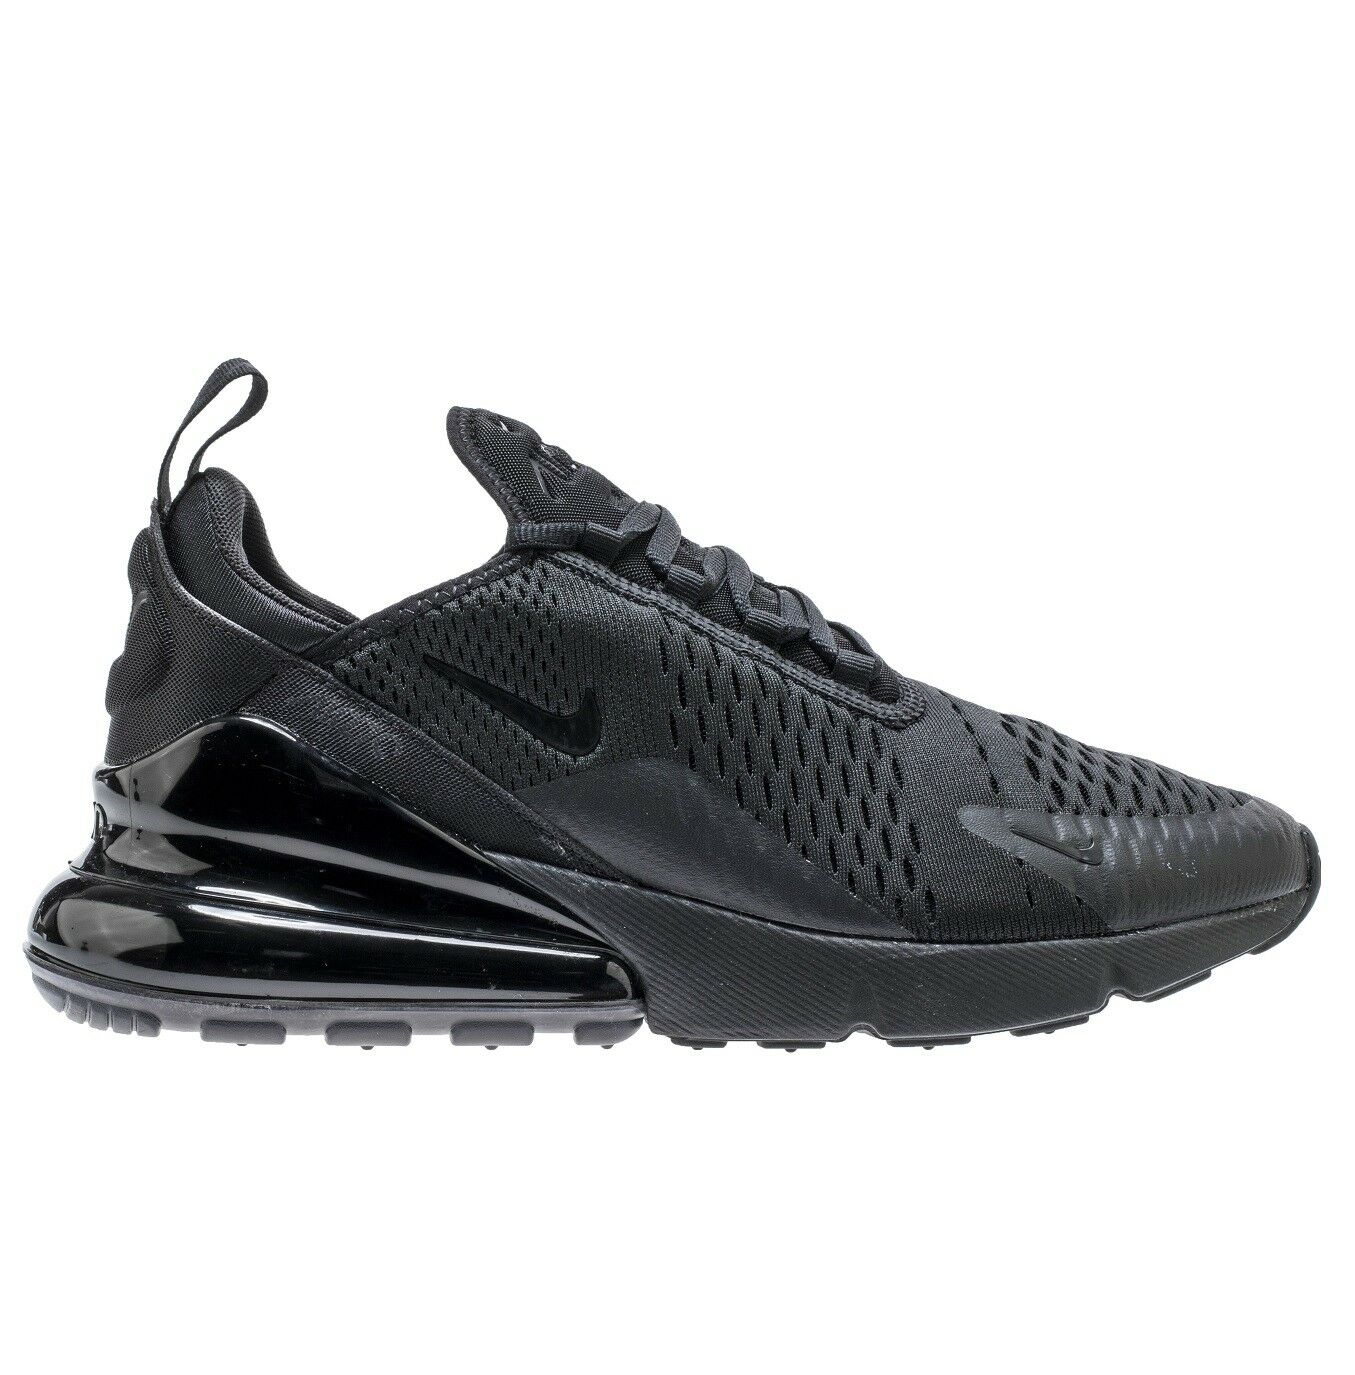 Nike Air Max 270 Mens AH8050-005 Triple Black Mesh Knit Knit Knit Running shoes Size 8 026ac6